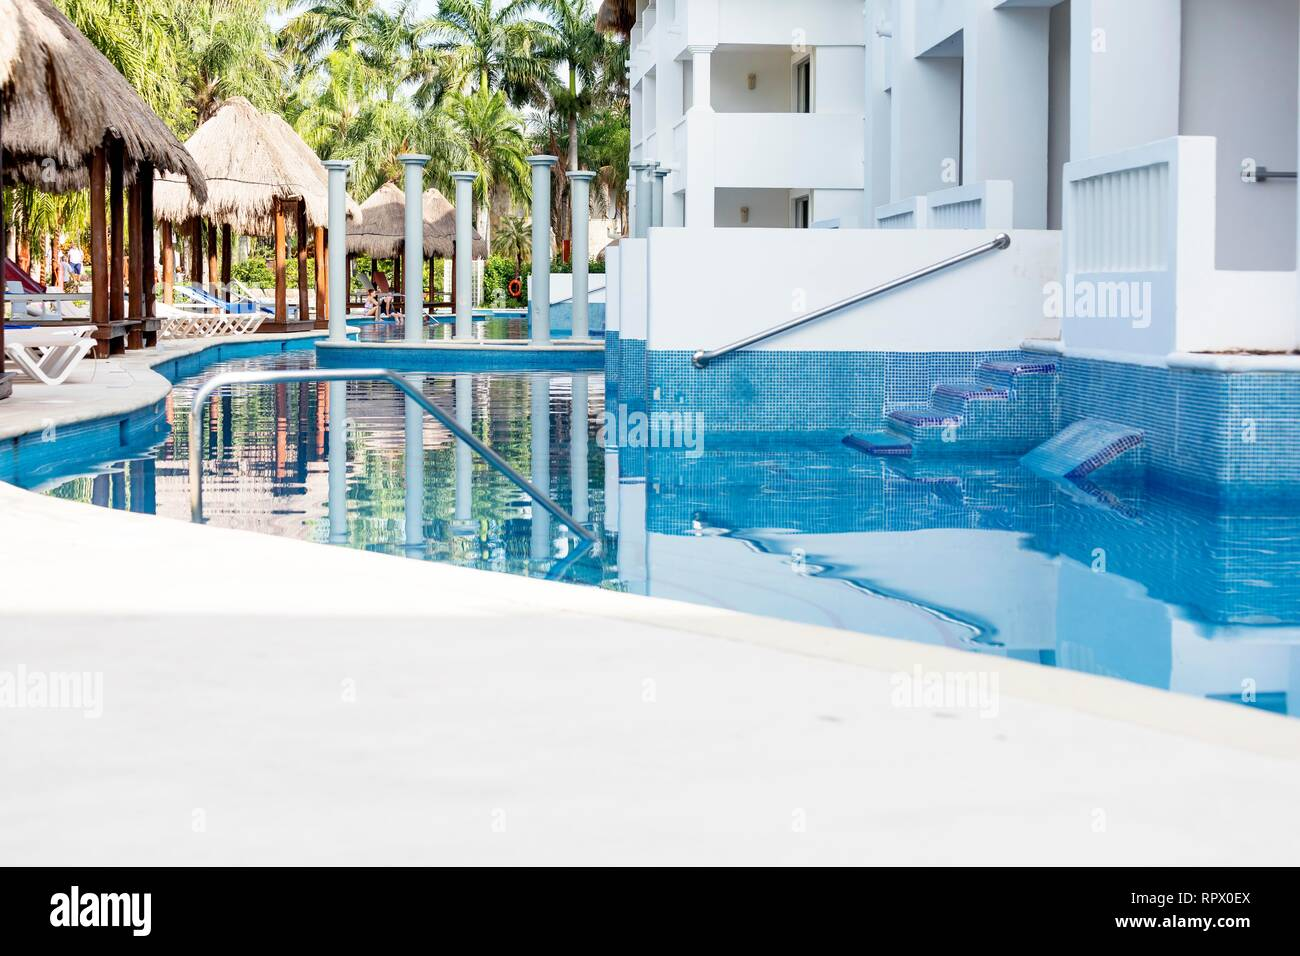 Grand Riviera Princess Hotel in Mexico Riviera Maya on 24th July 2018. Low down shot of this Caribbean All Inclusive Hotel exterior at sunset in the l - Stock Image